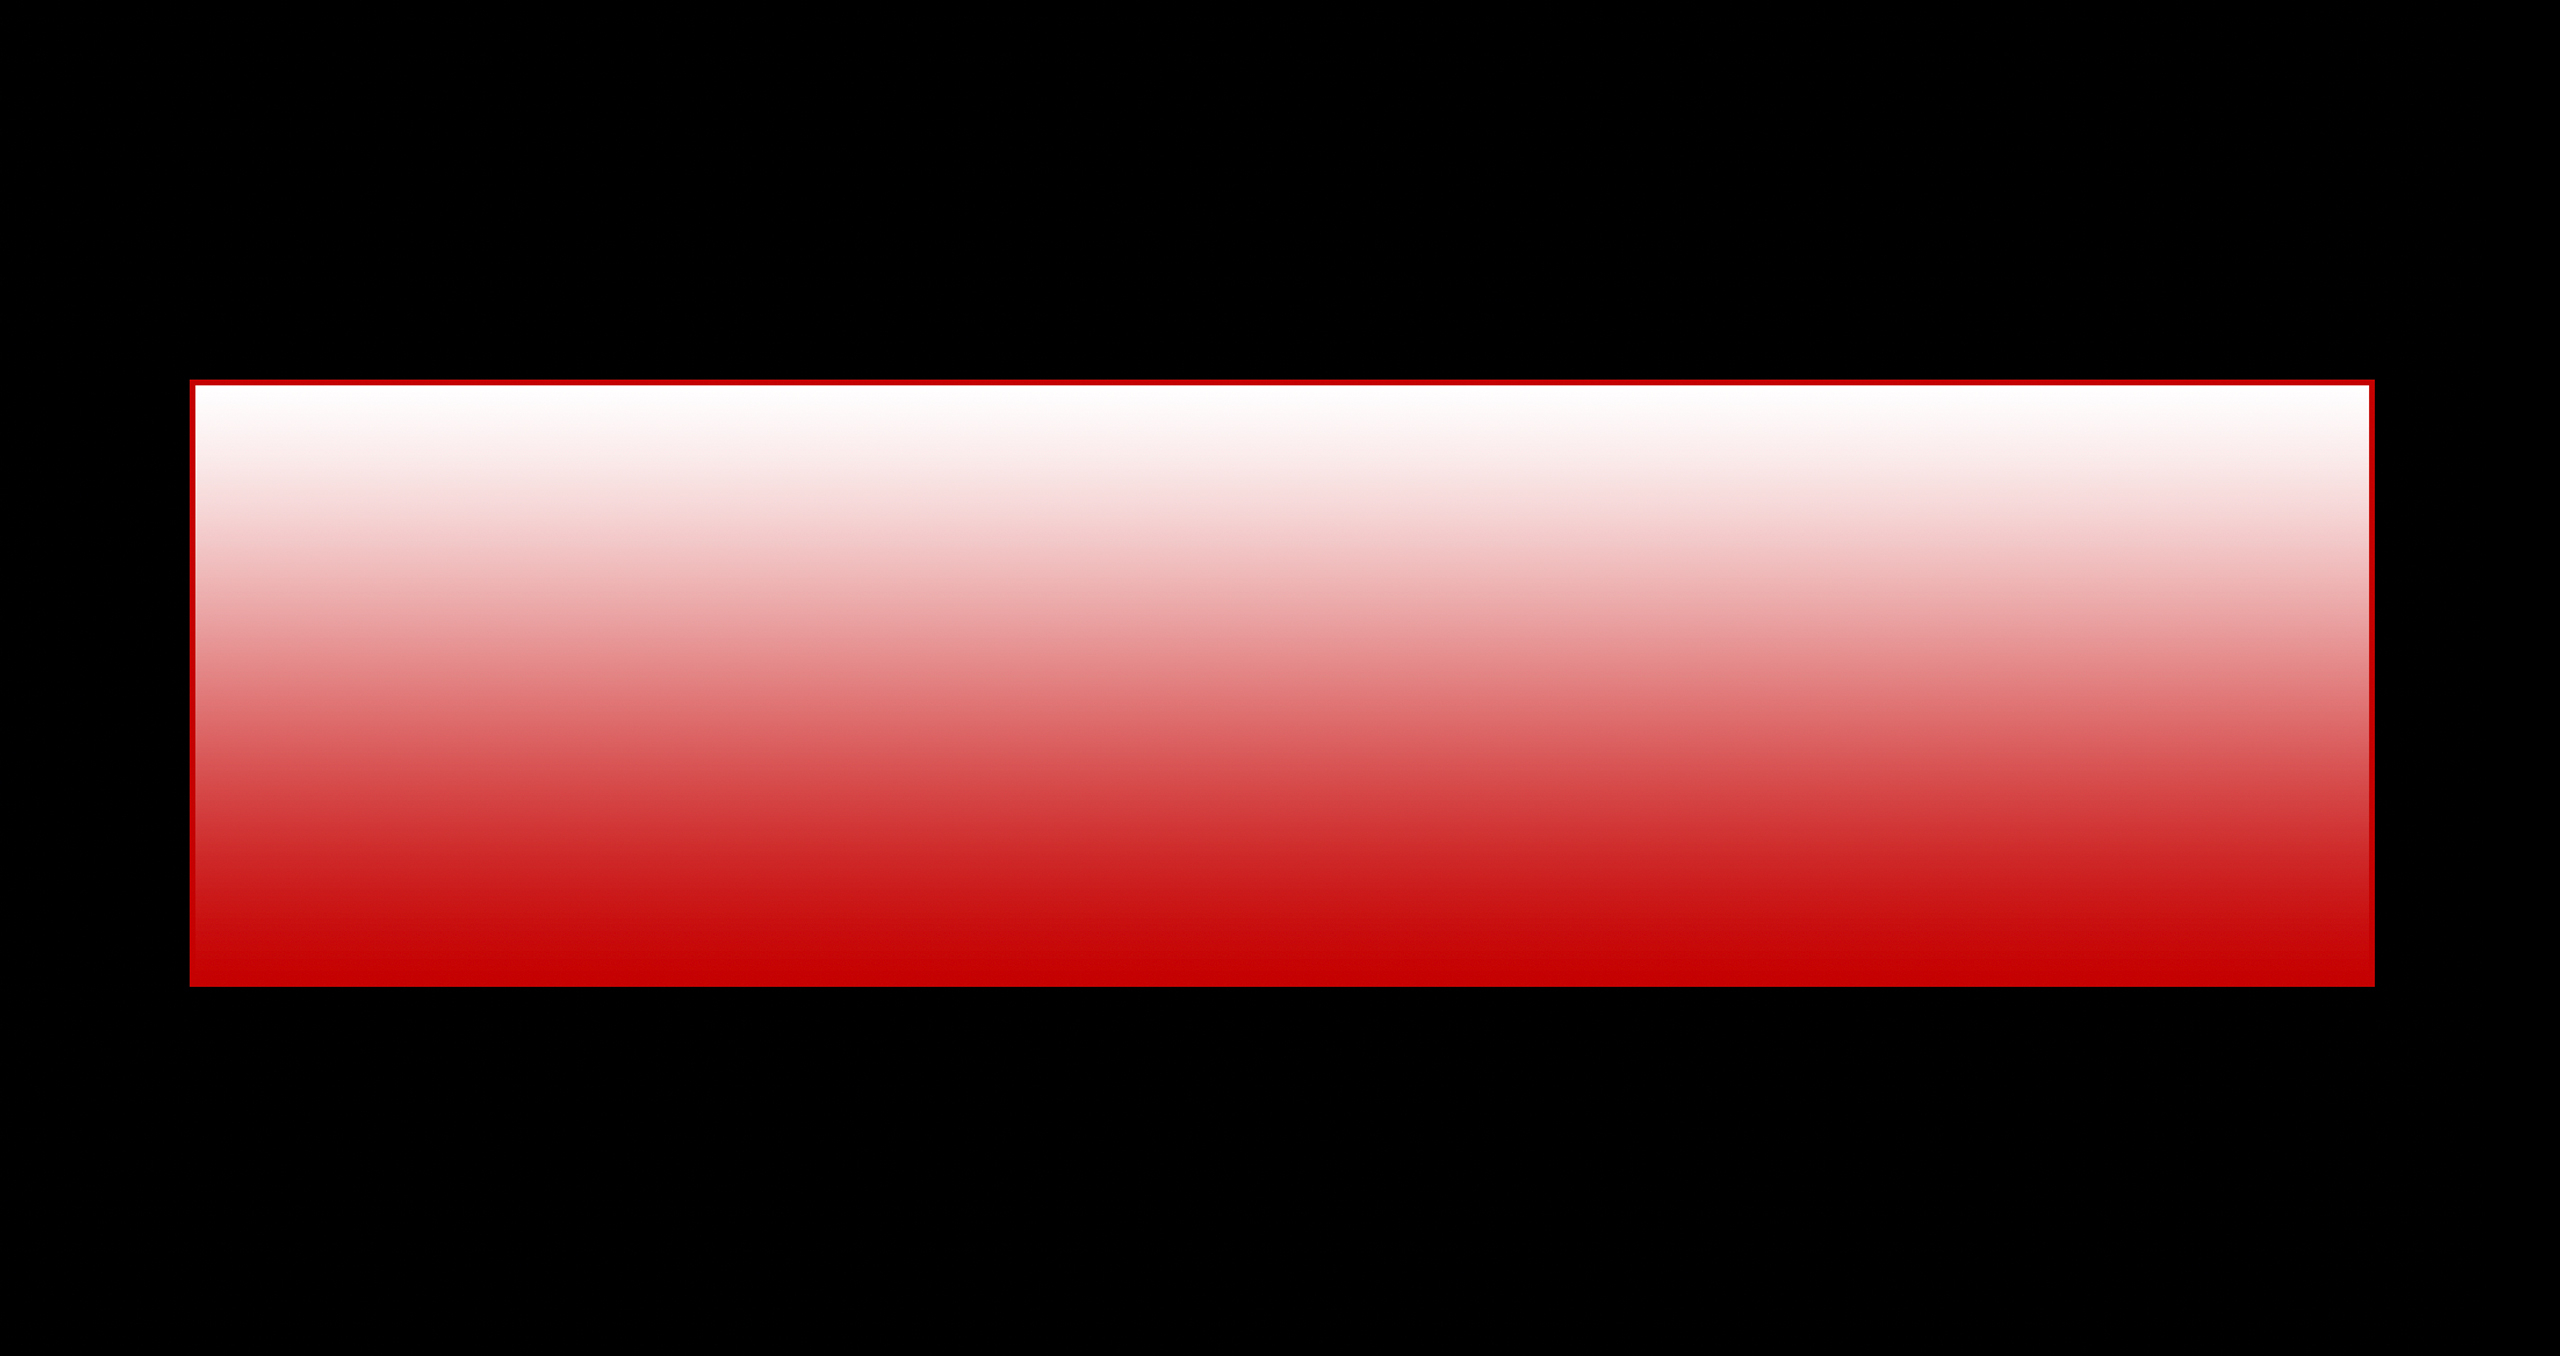 Red rectangle with semi transparent white gradient overlay that has edges trimmed